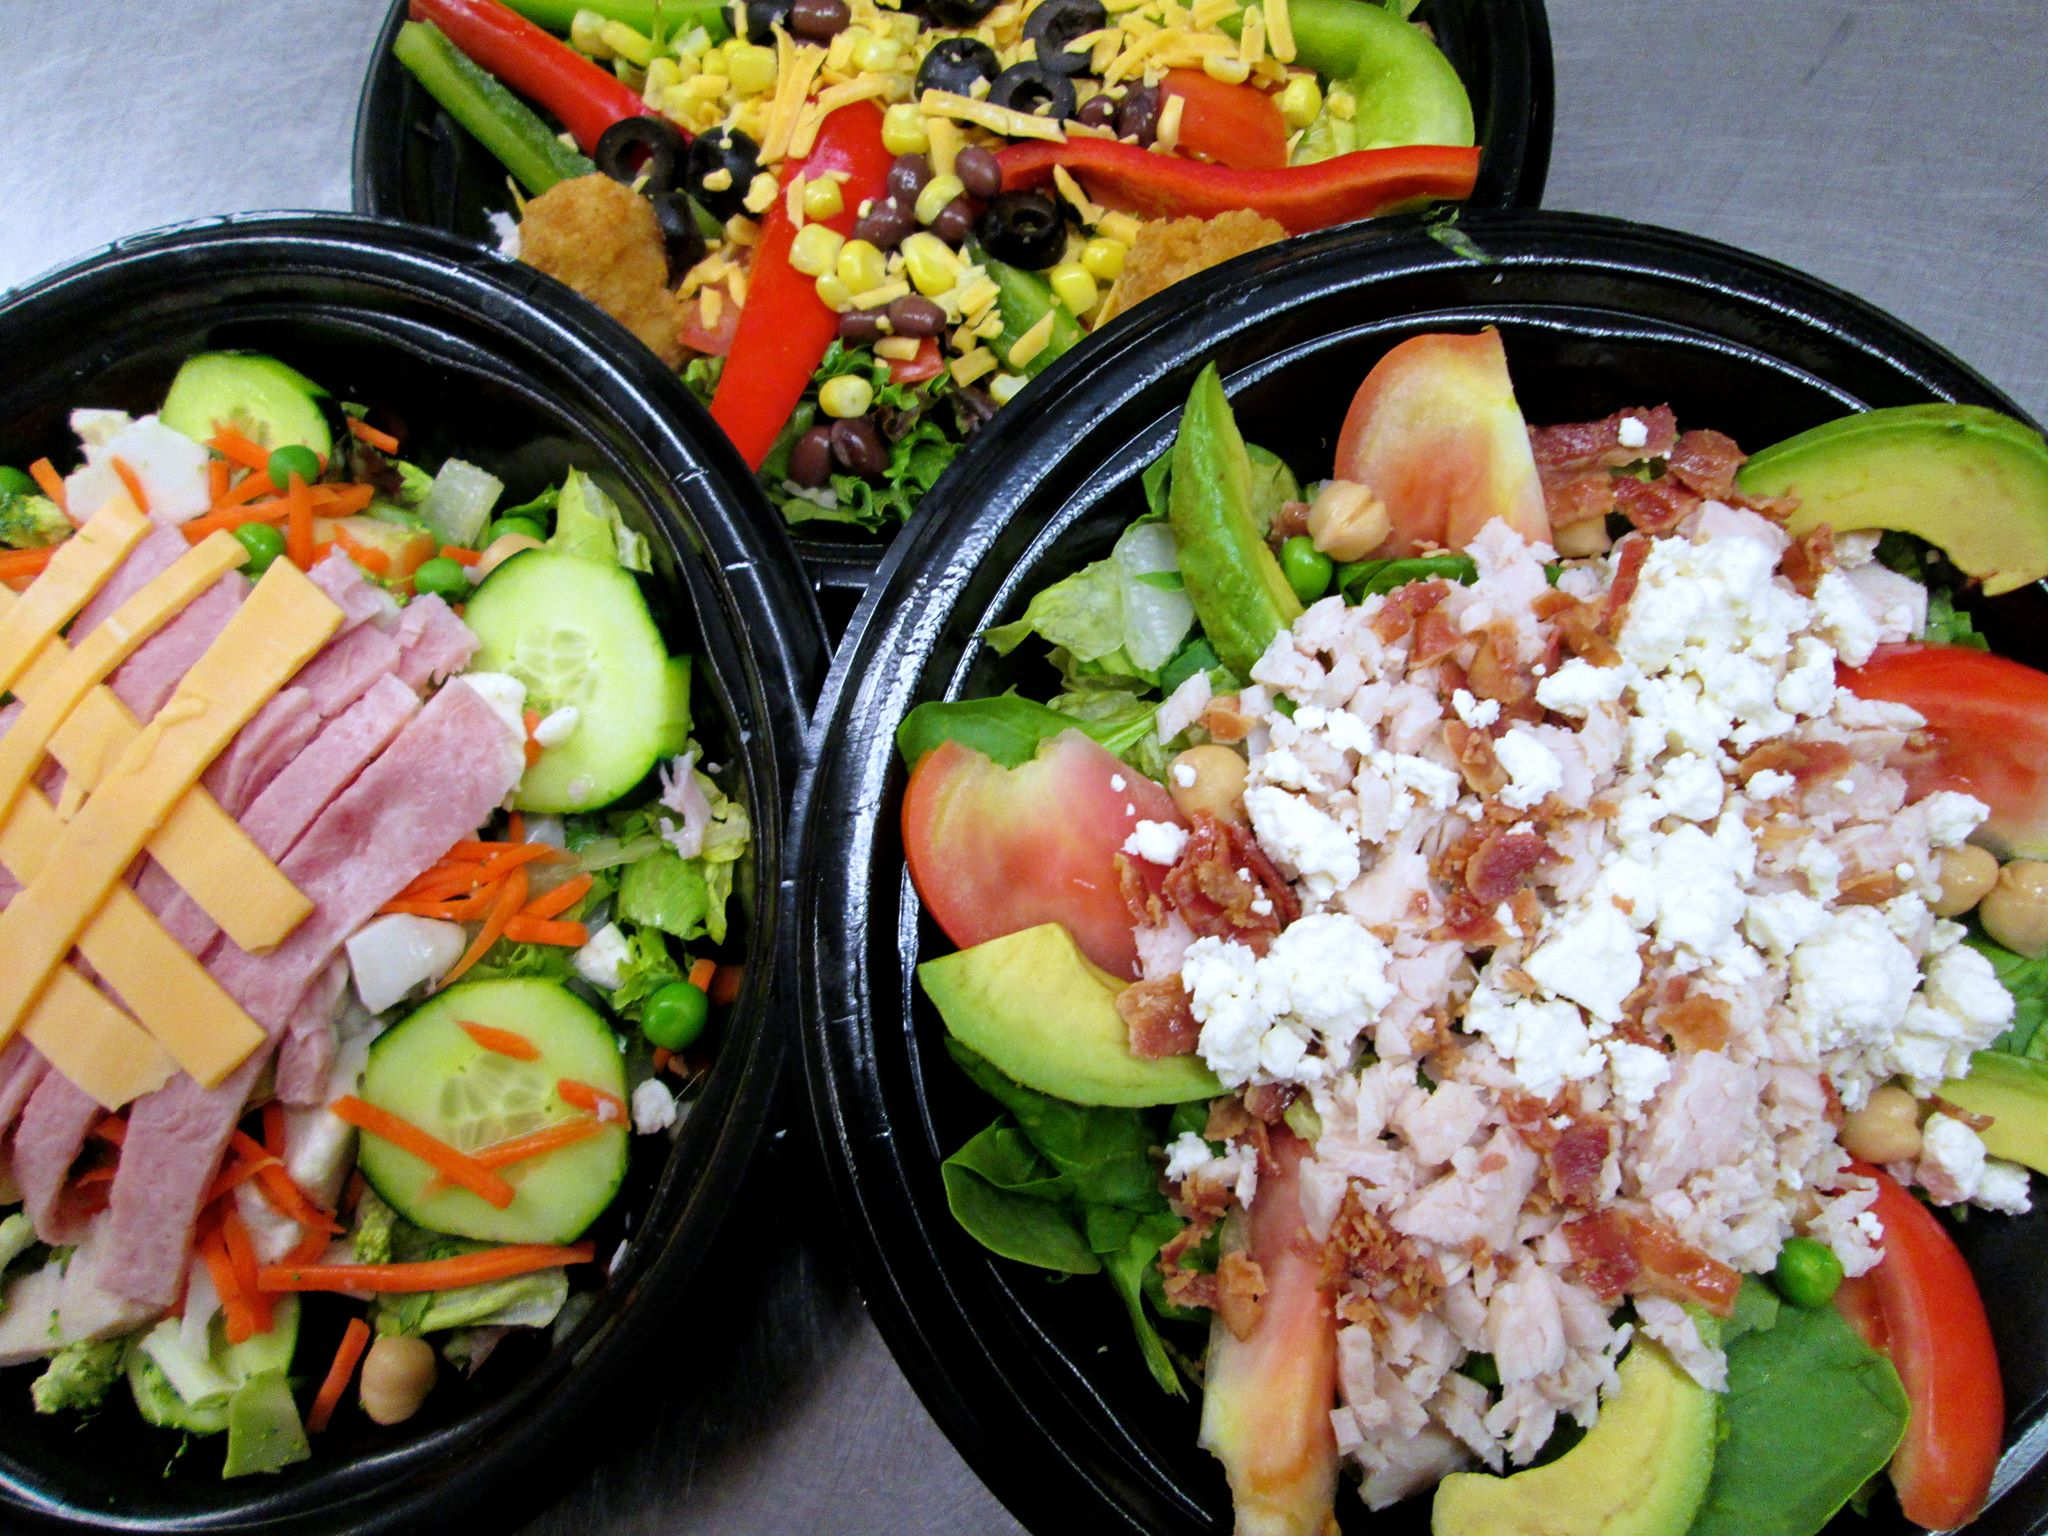 school meals that rock featuring school nutrition programs that grab n go salads at the secondary level and chef salads at the elementary level